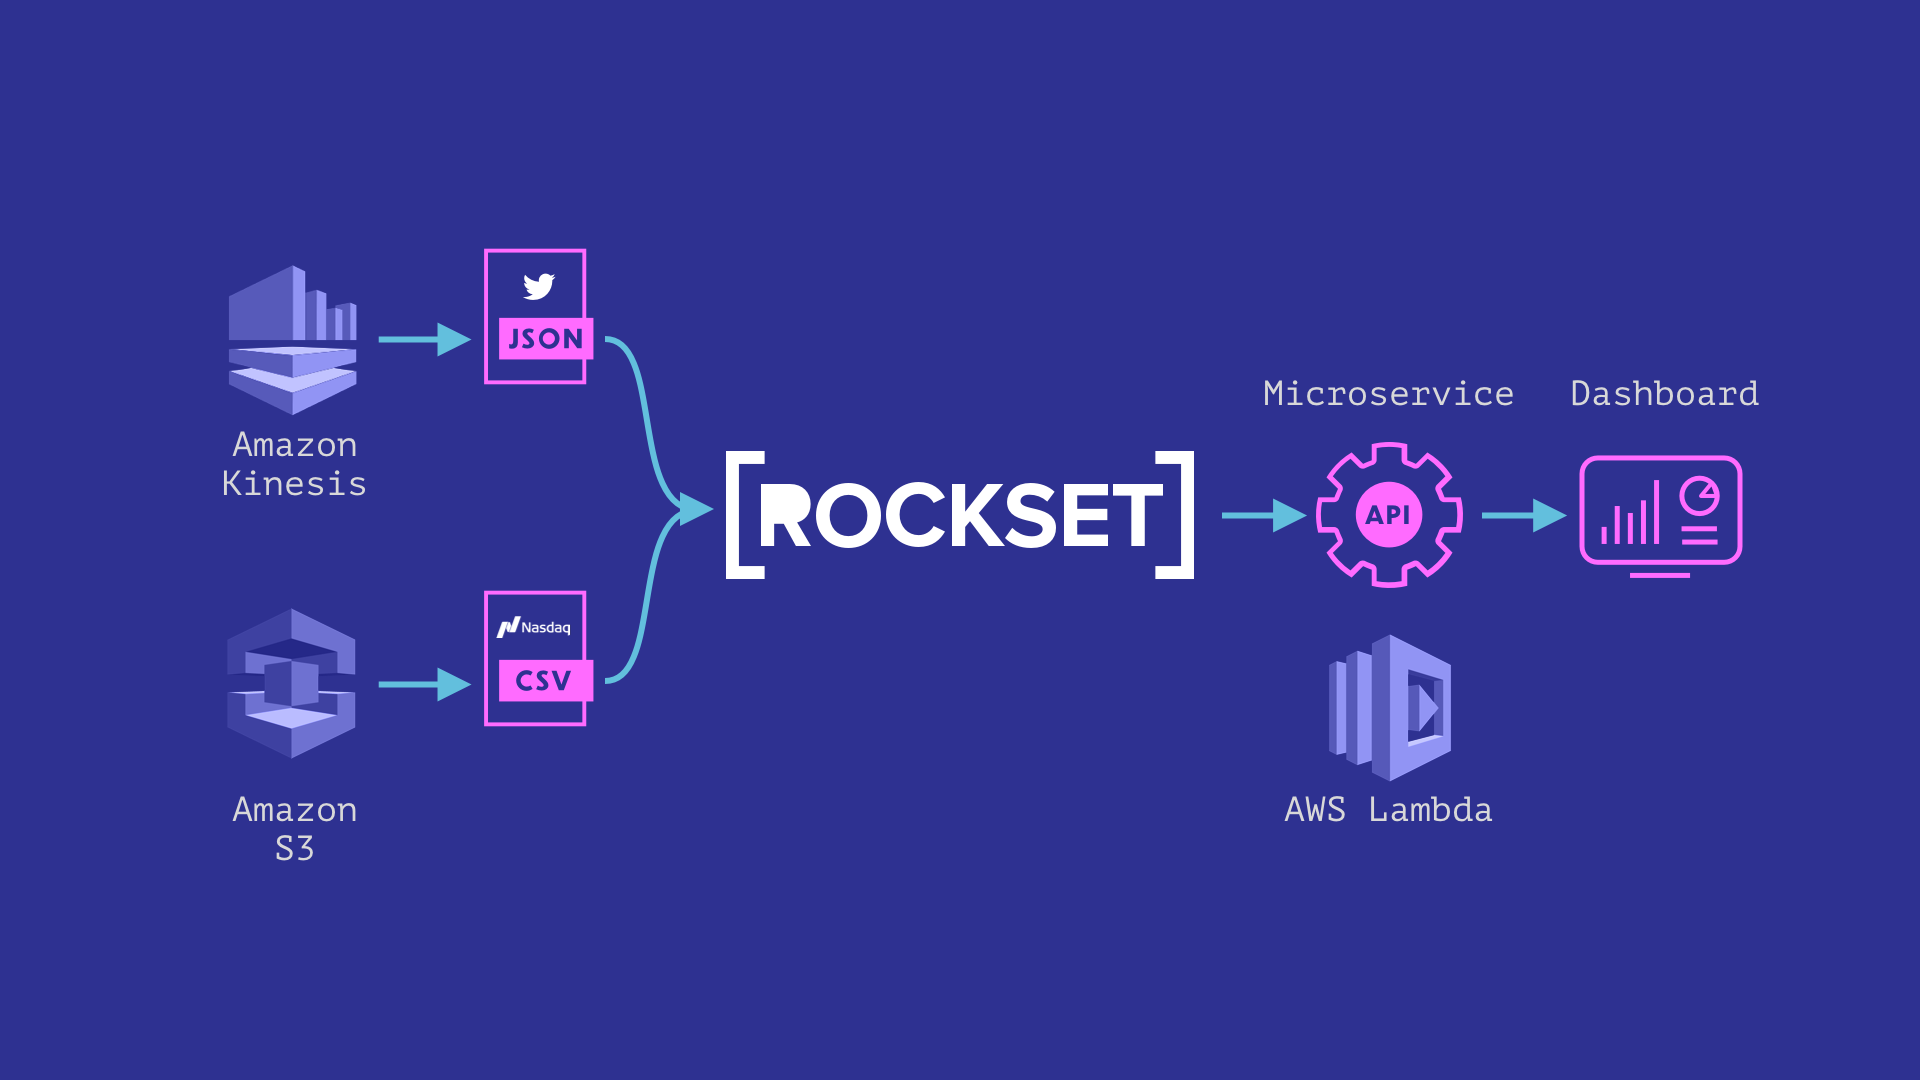 Building a Serverless Microservice Using Rockset and AWS